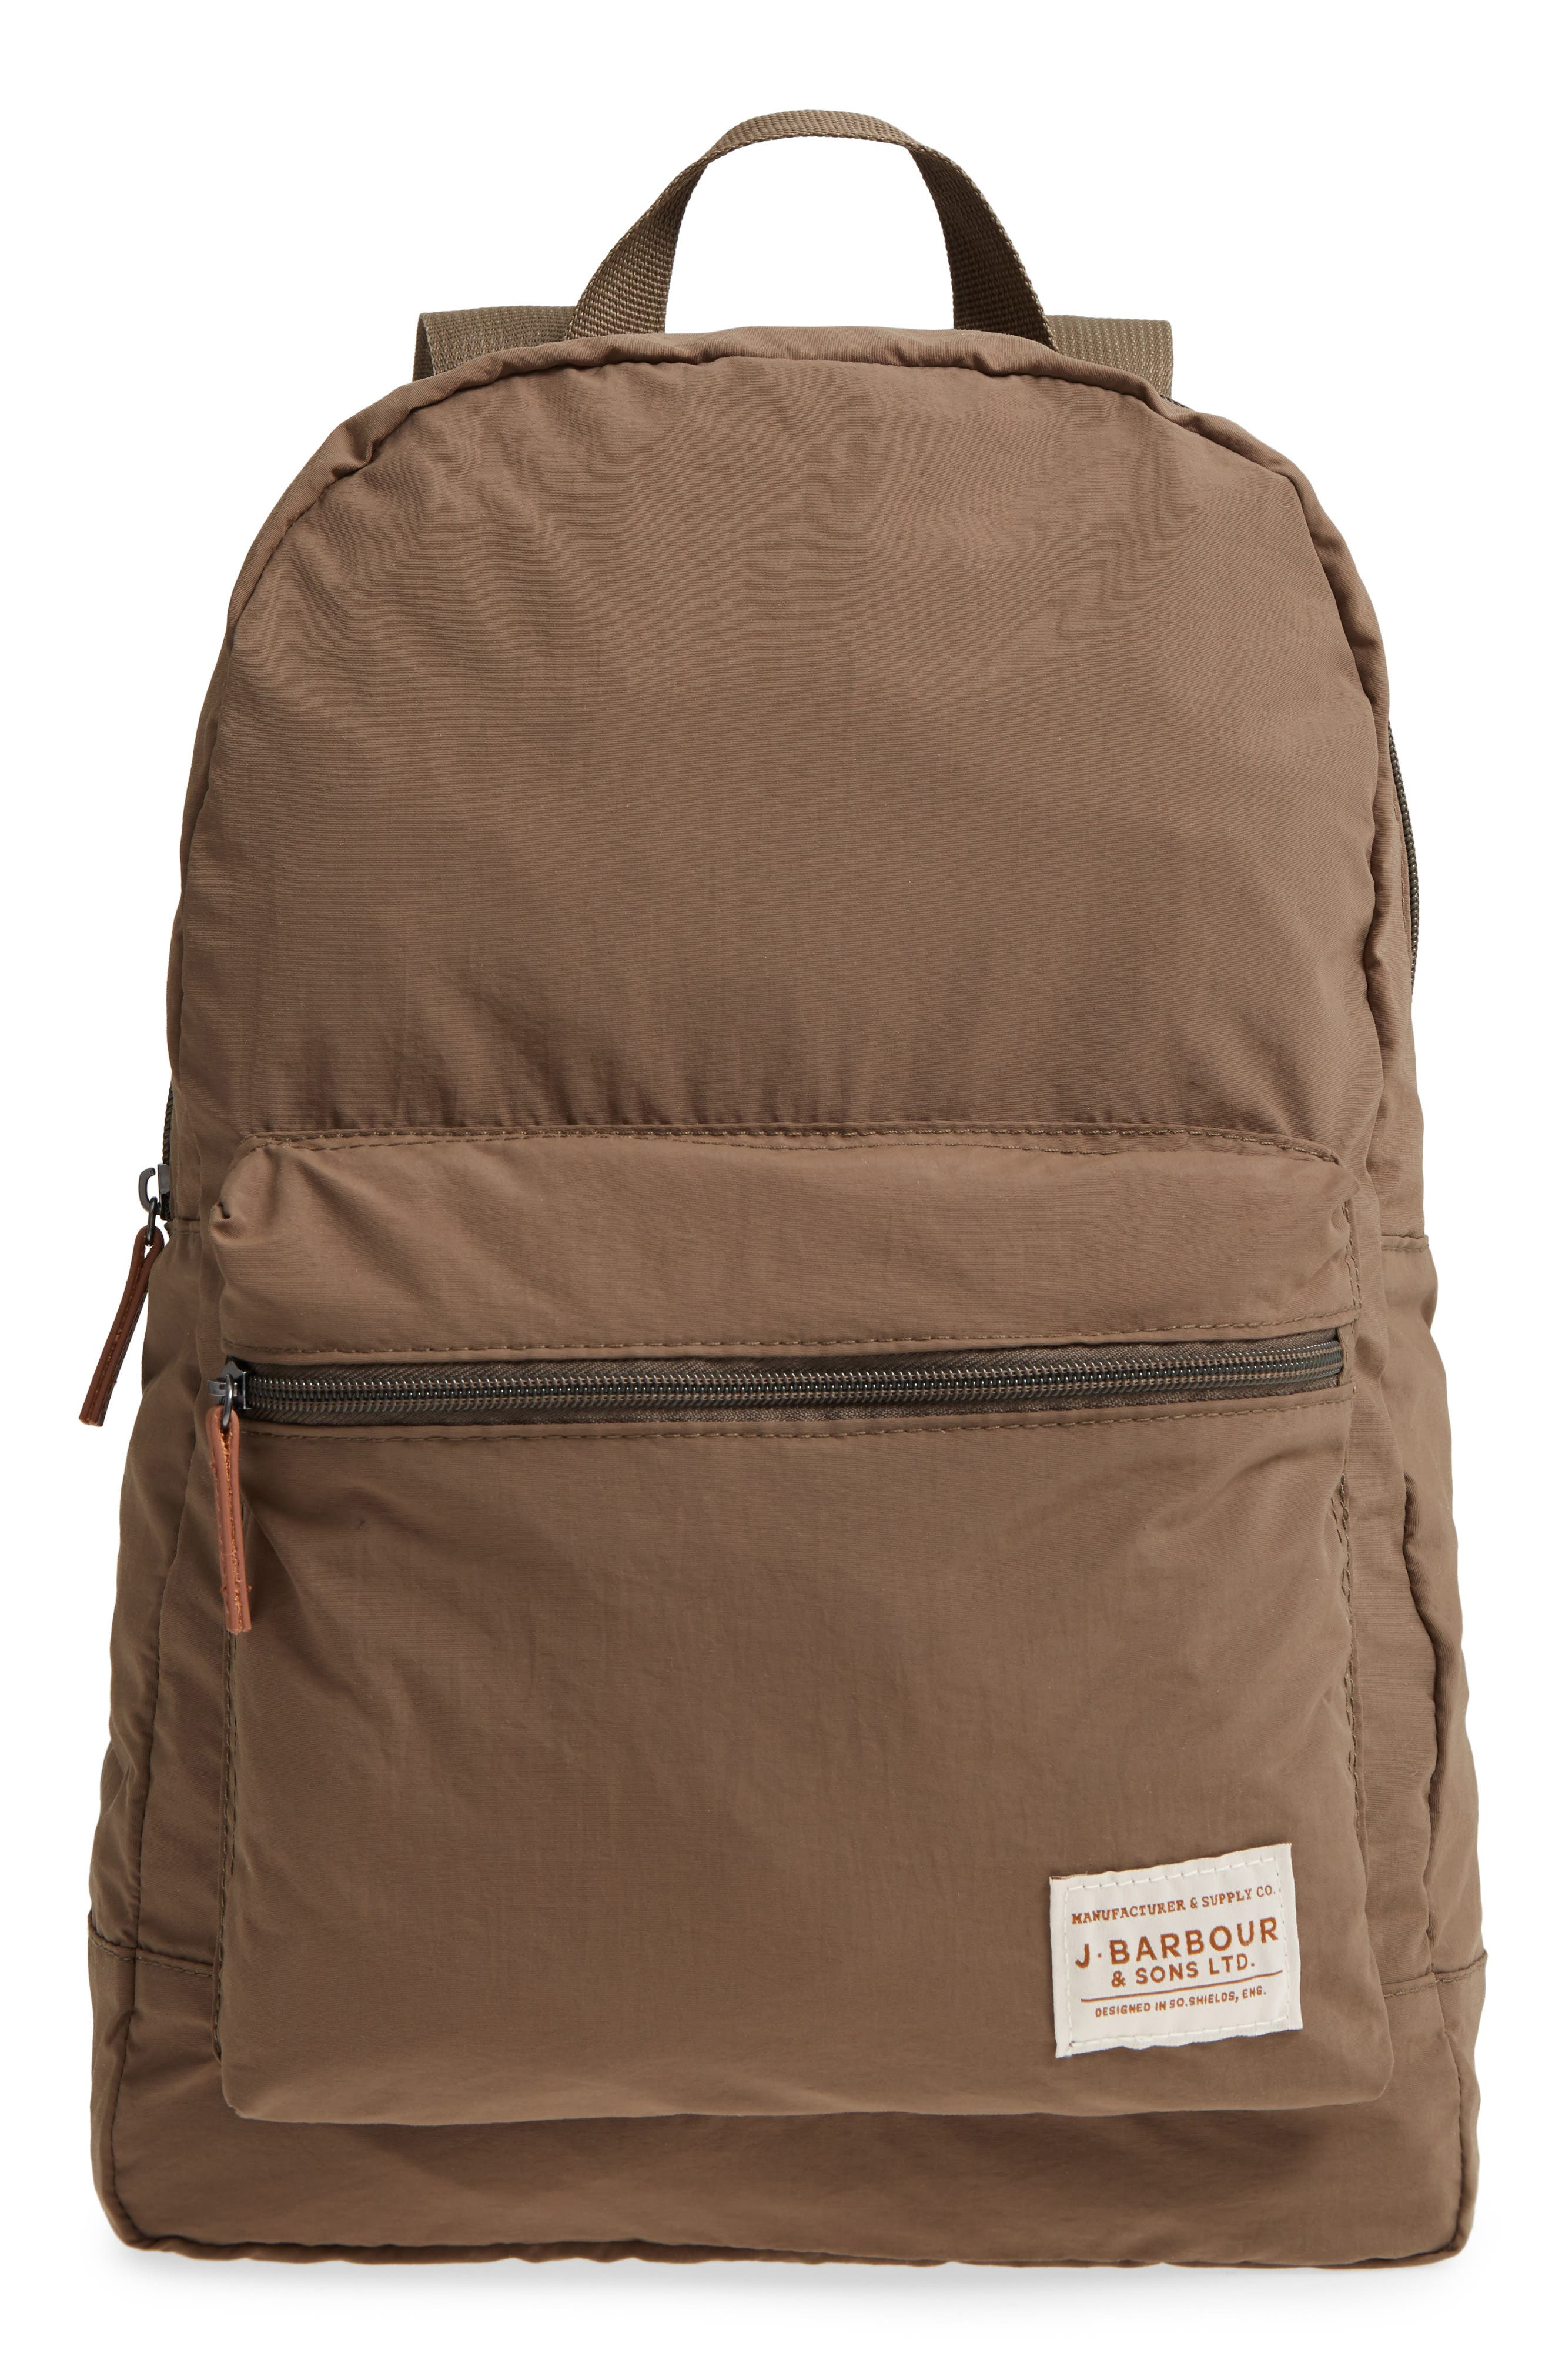 Barbour Beauly Packable Backpack - Beige